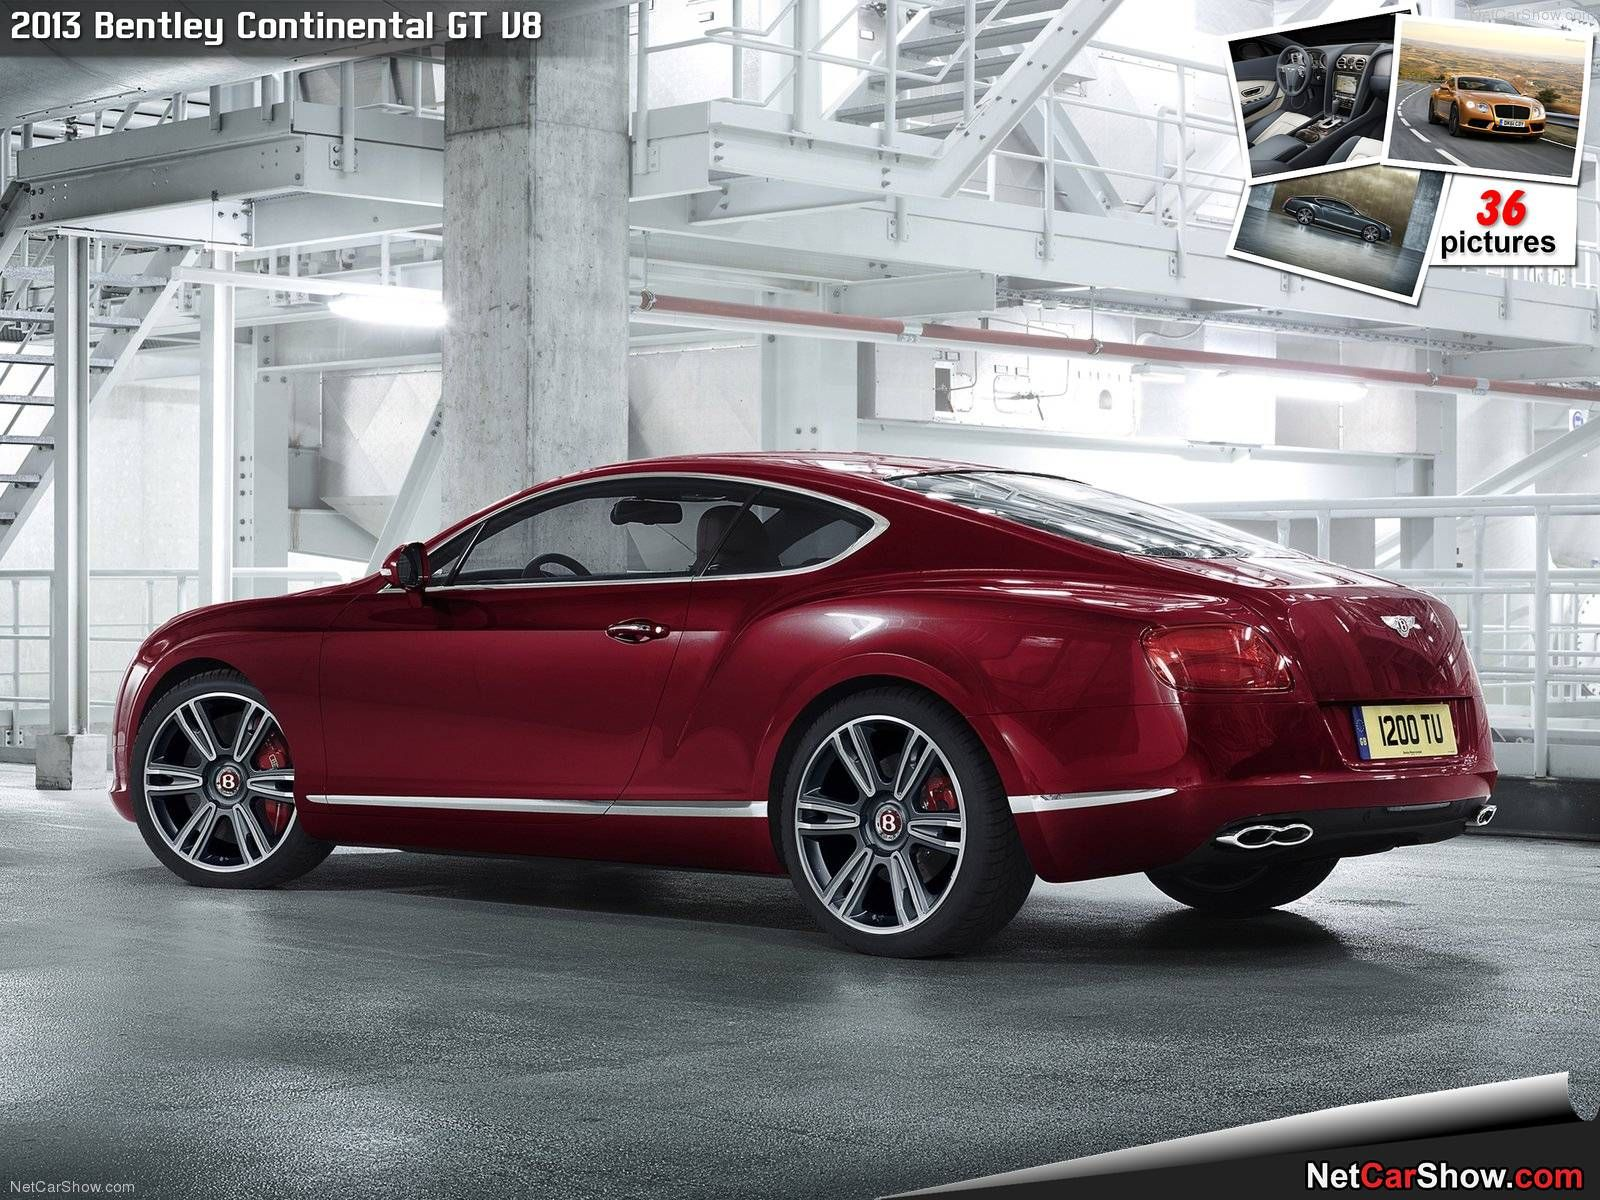 2013 Bentley Continental GT VW CONVERTIBLES